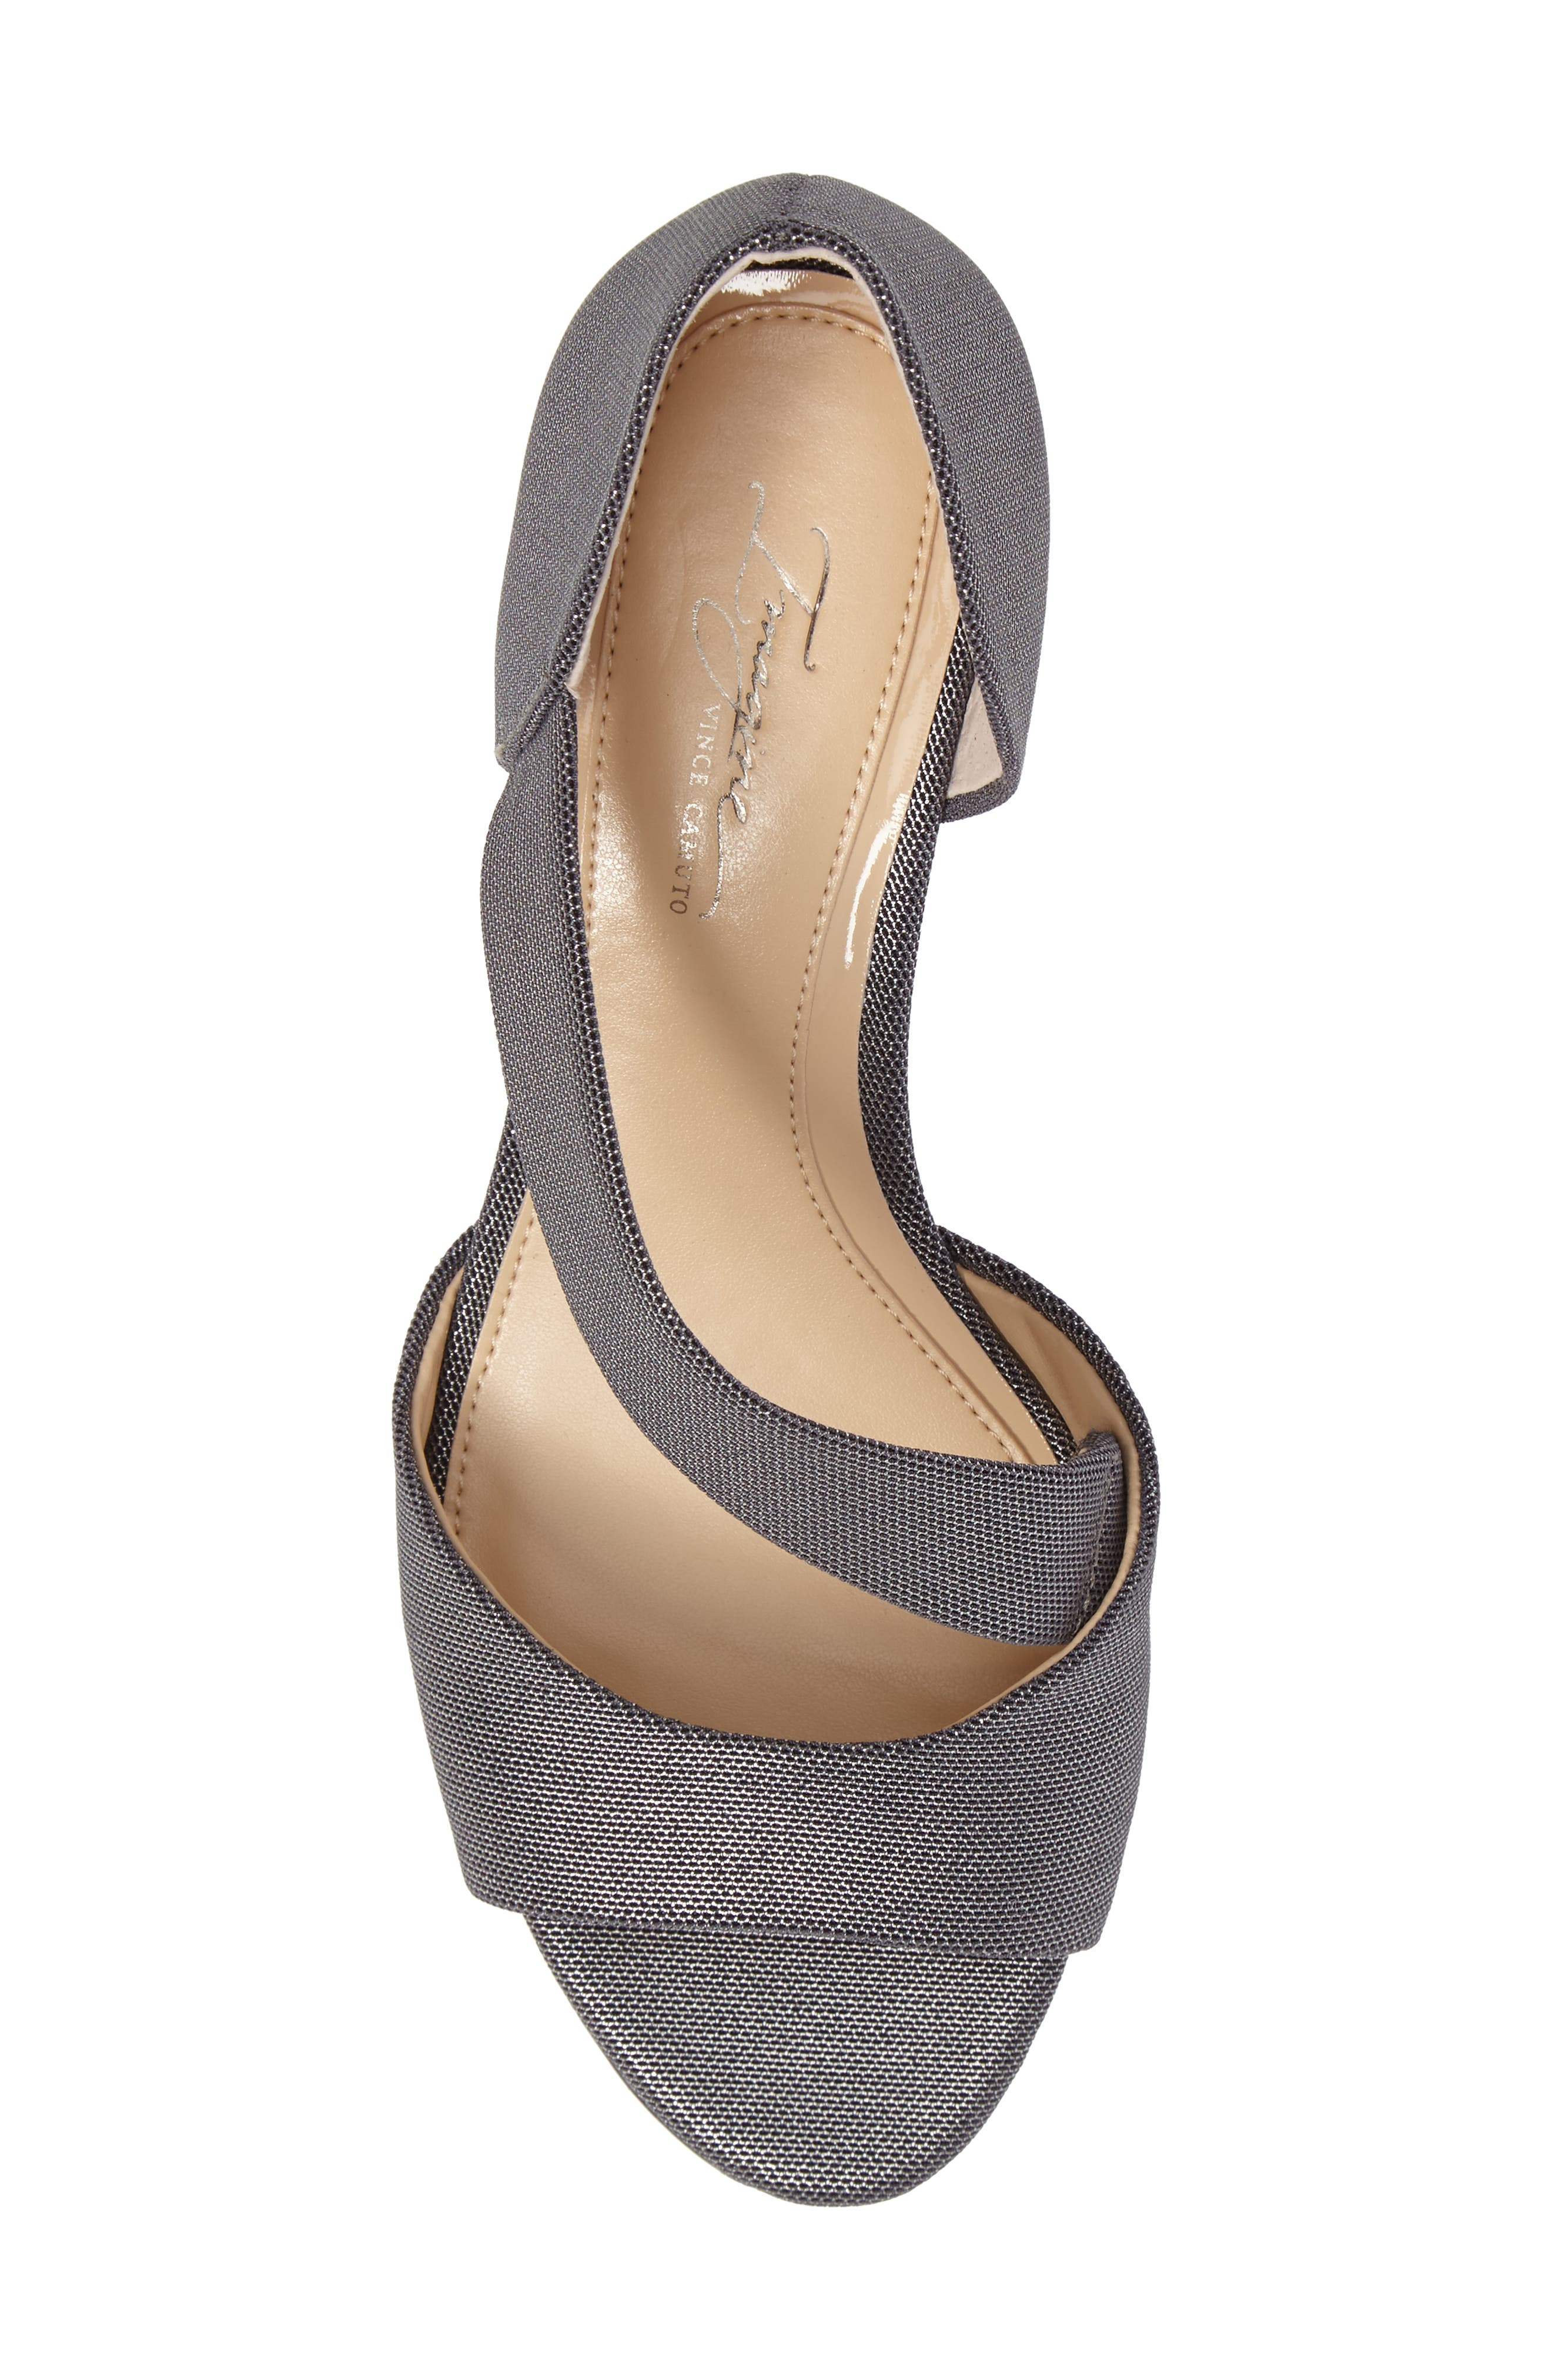 Jefre Wedgee Sandal,                             Alternate thumbnail 5, color,                             Anthracite Fabric